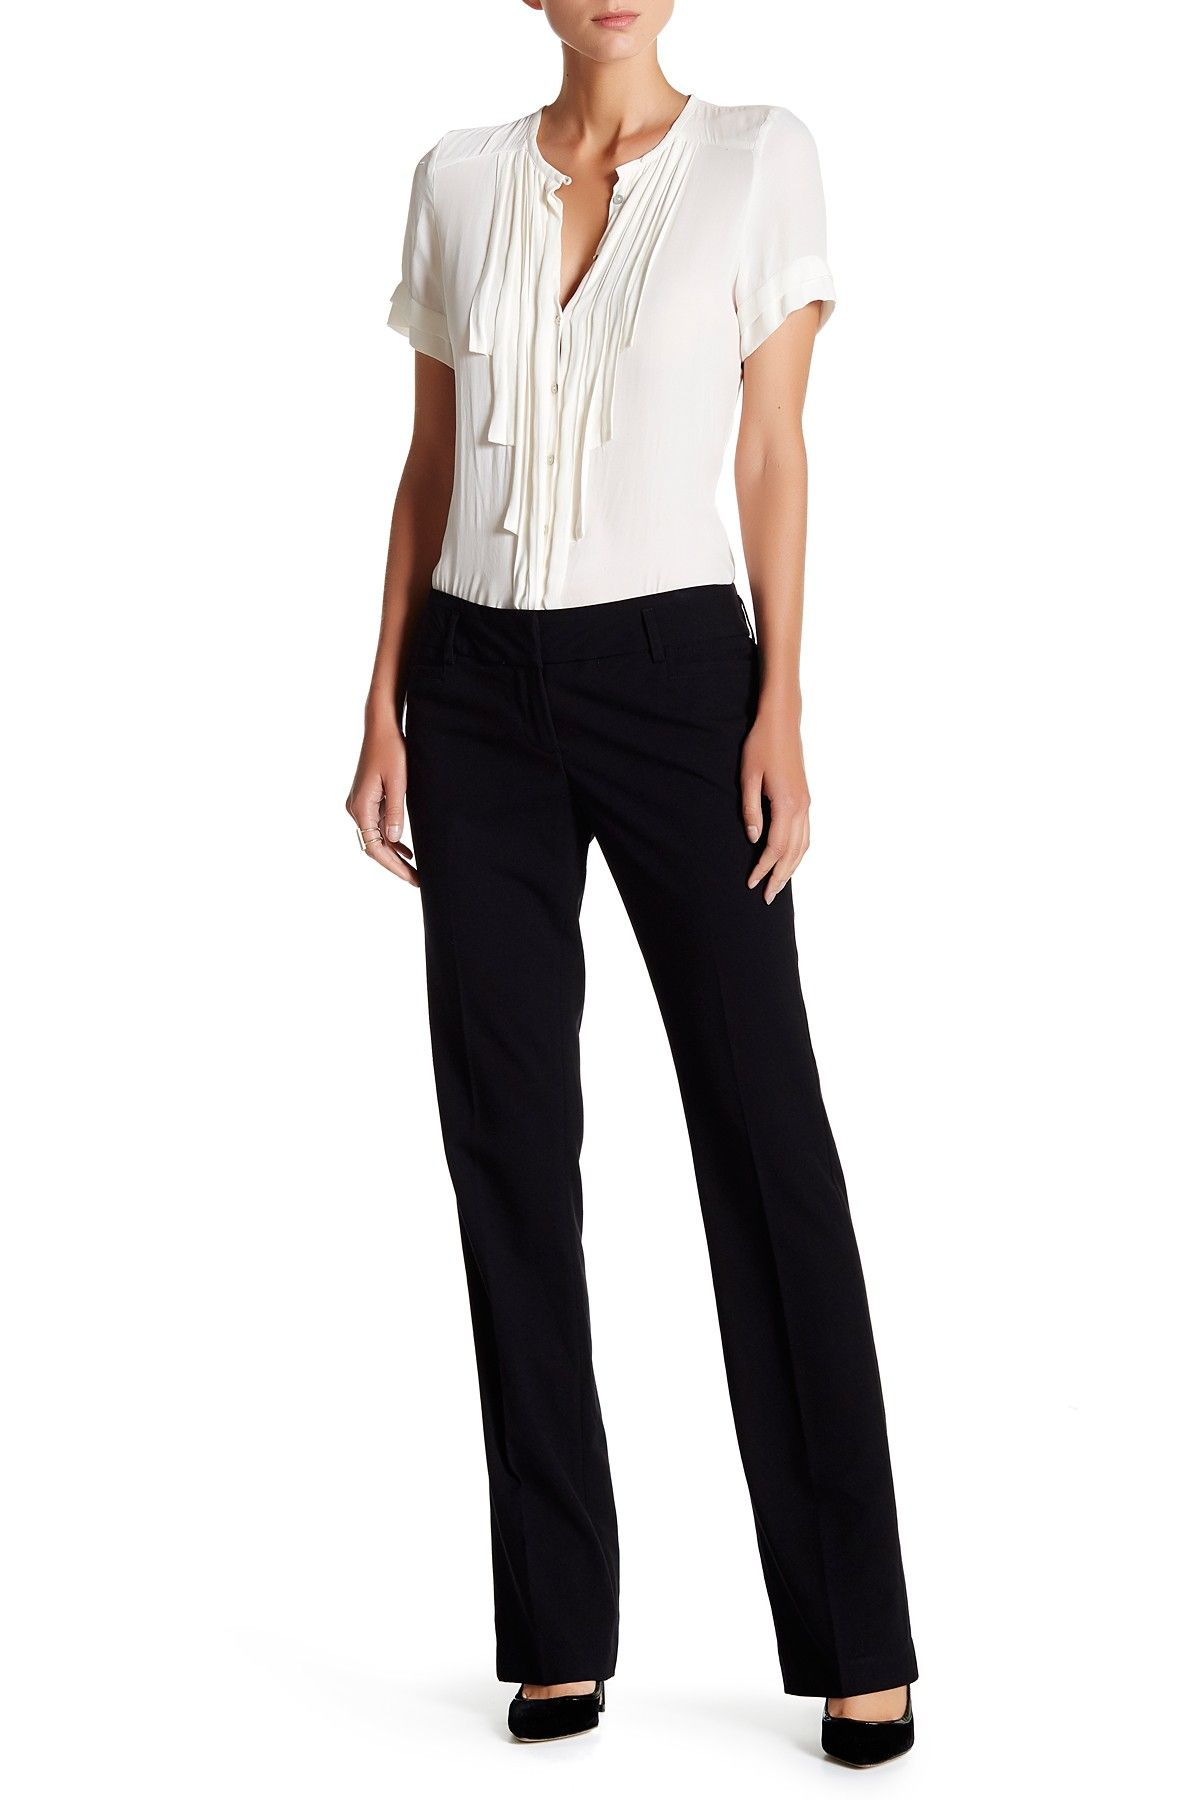 Amanda Chelsea Signature Leighton Trousers Nordstrom Rack Office Outfits Job Interview Dress Women Pants Casual